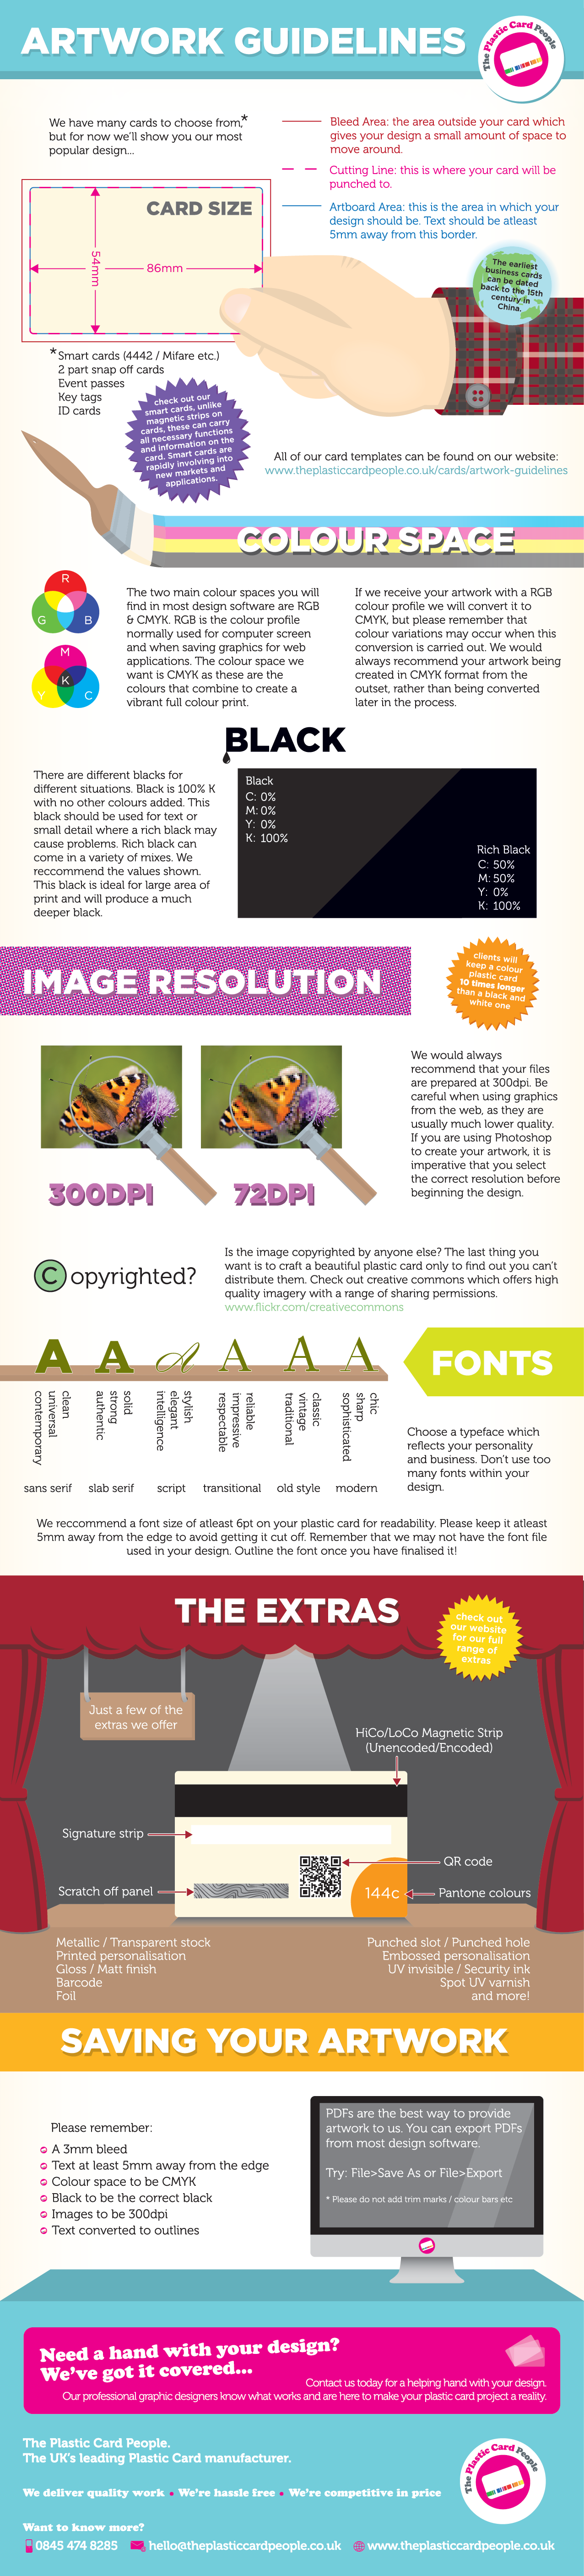 Artwork guidelines plastic card printing infographic for designing ...